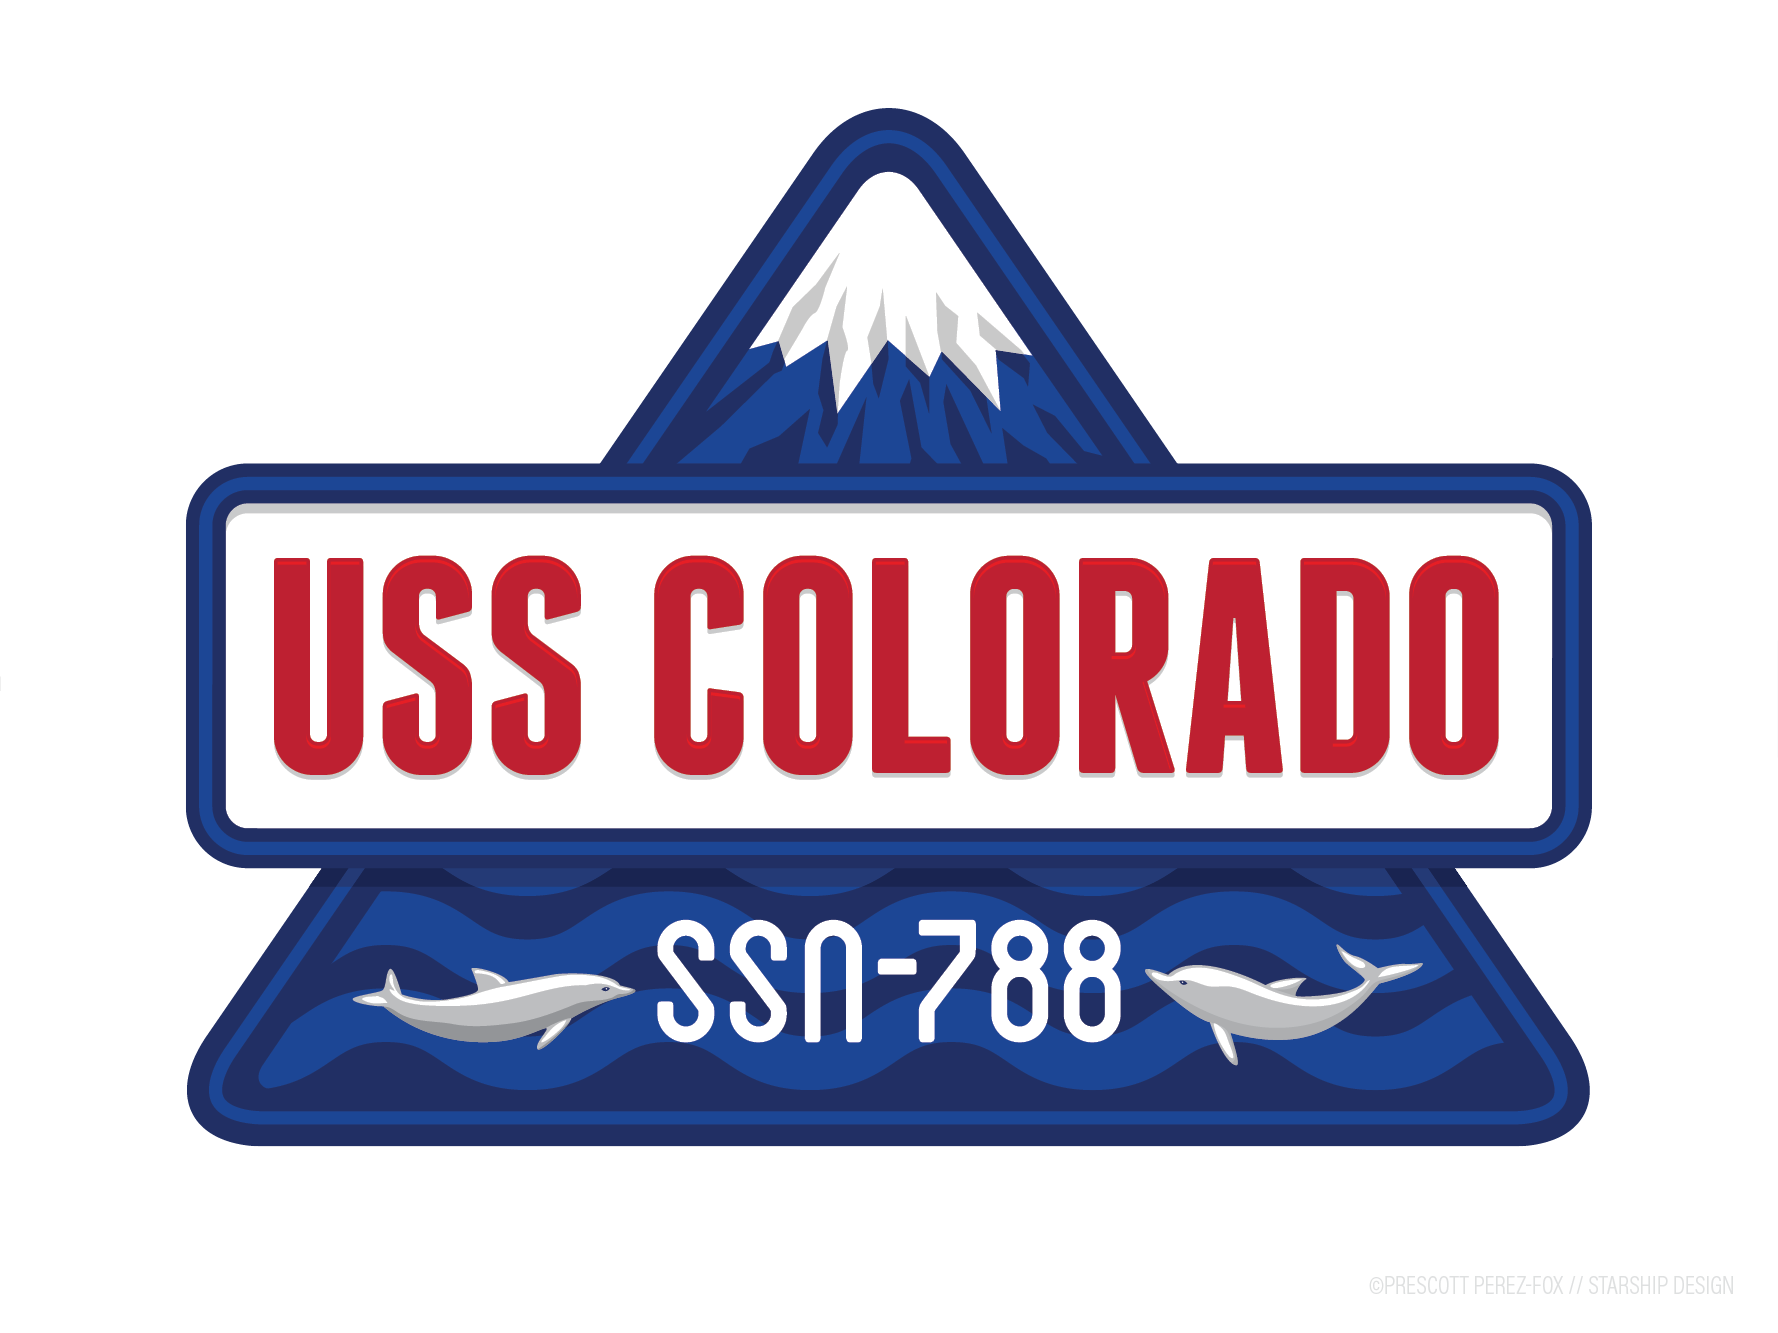 USS Colorado — crest 2, full-colour